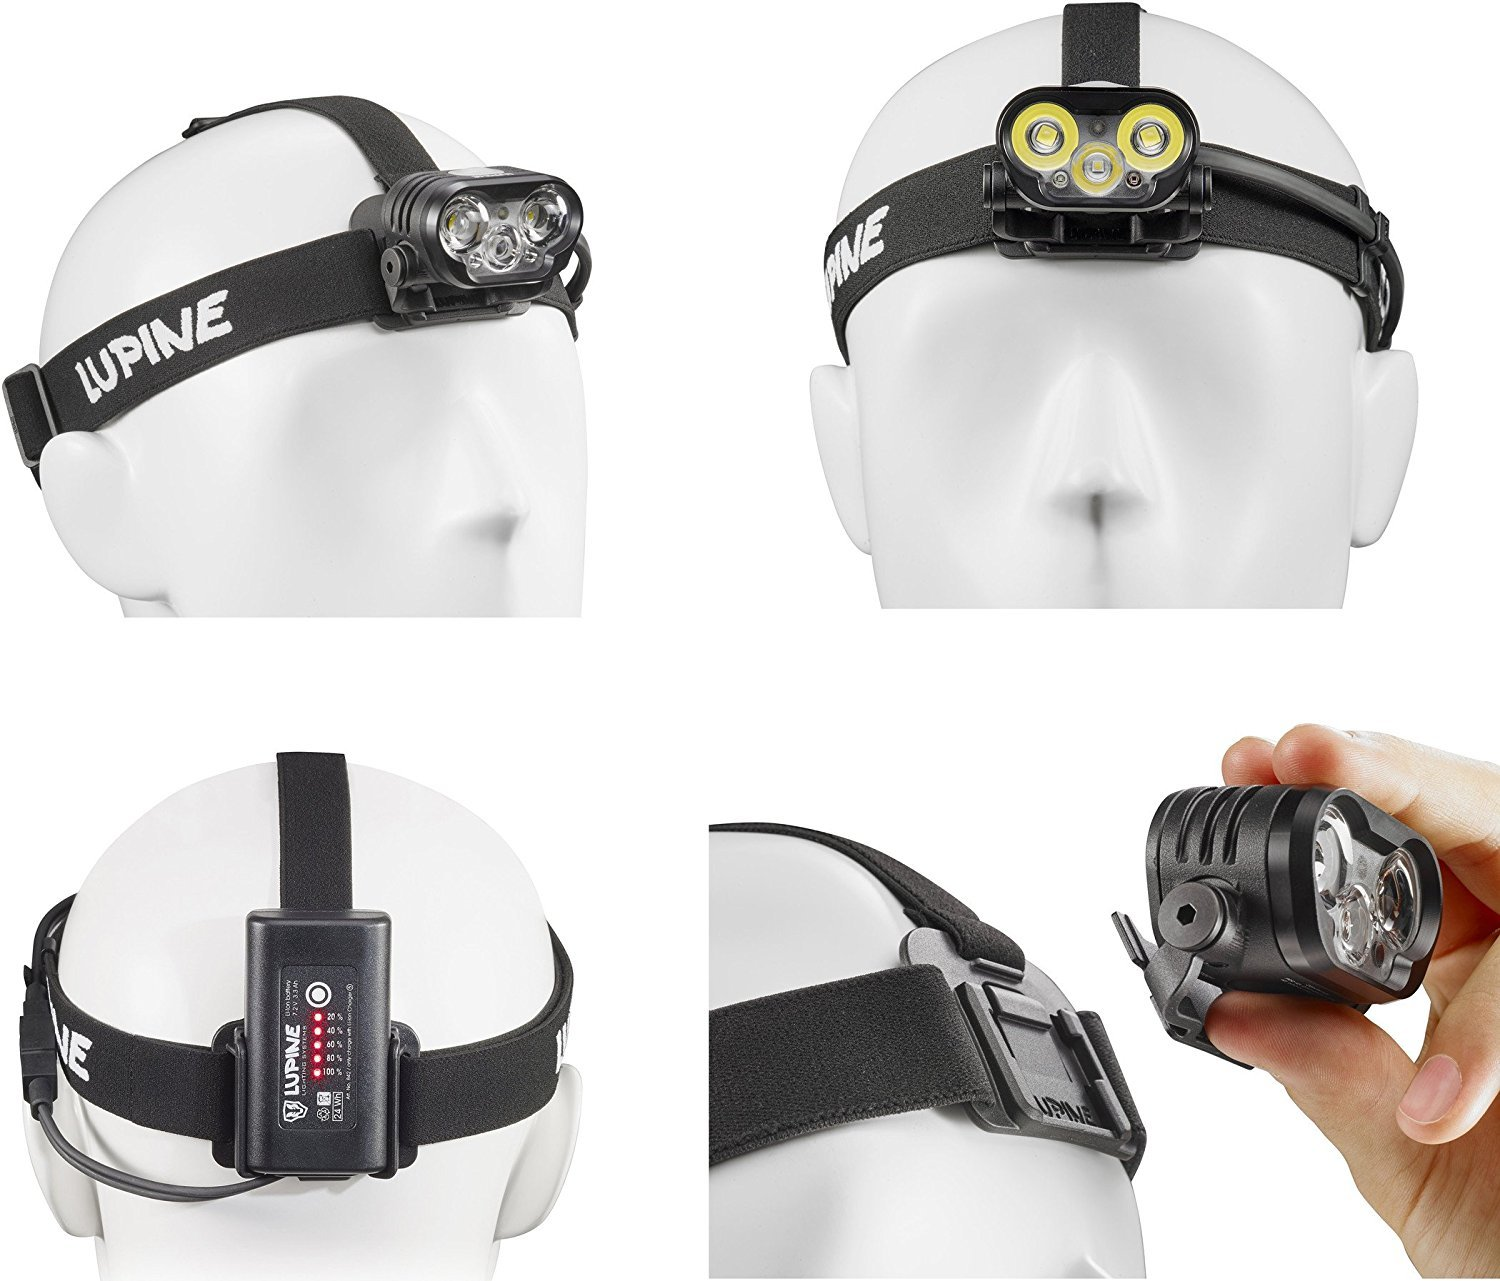 Lupine Lighting Systems BLIKA X4 SC Smartcore 2100 Lumen LED Headlamp System by Lupine Lighting Systems (Image #1)